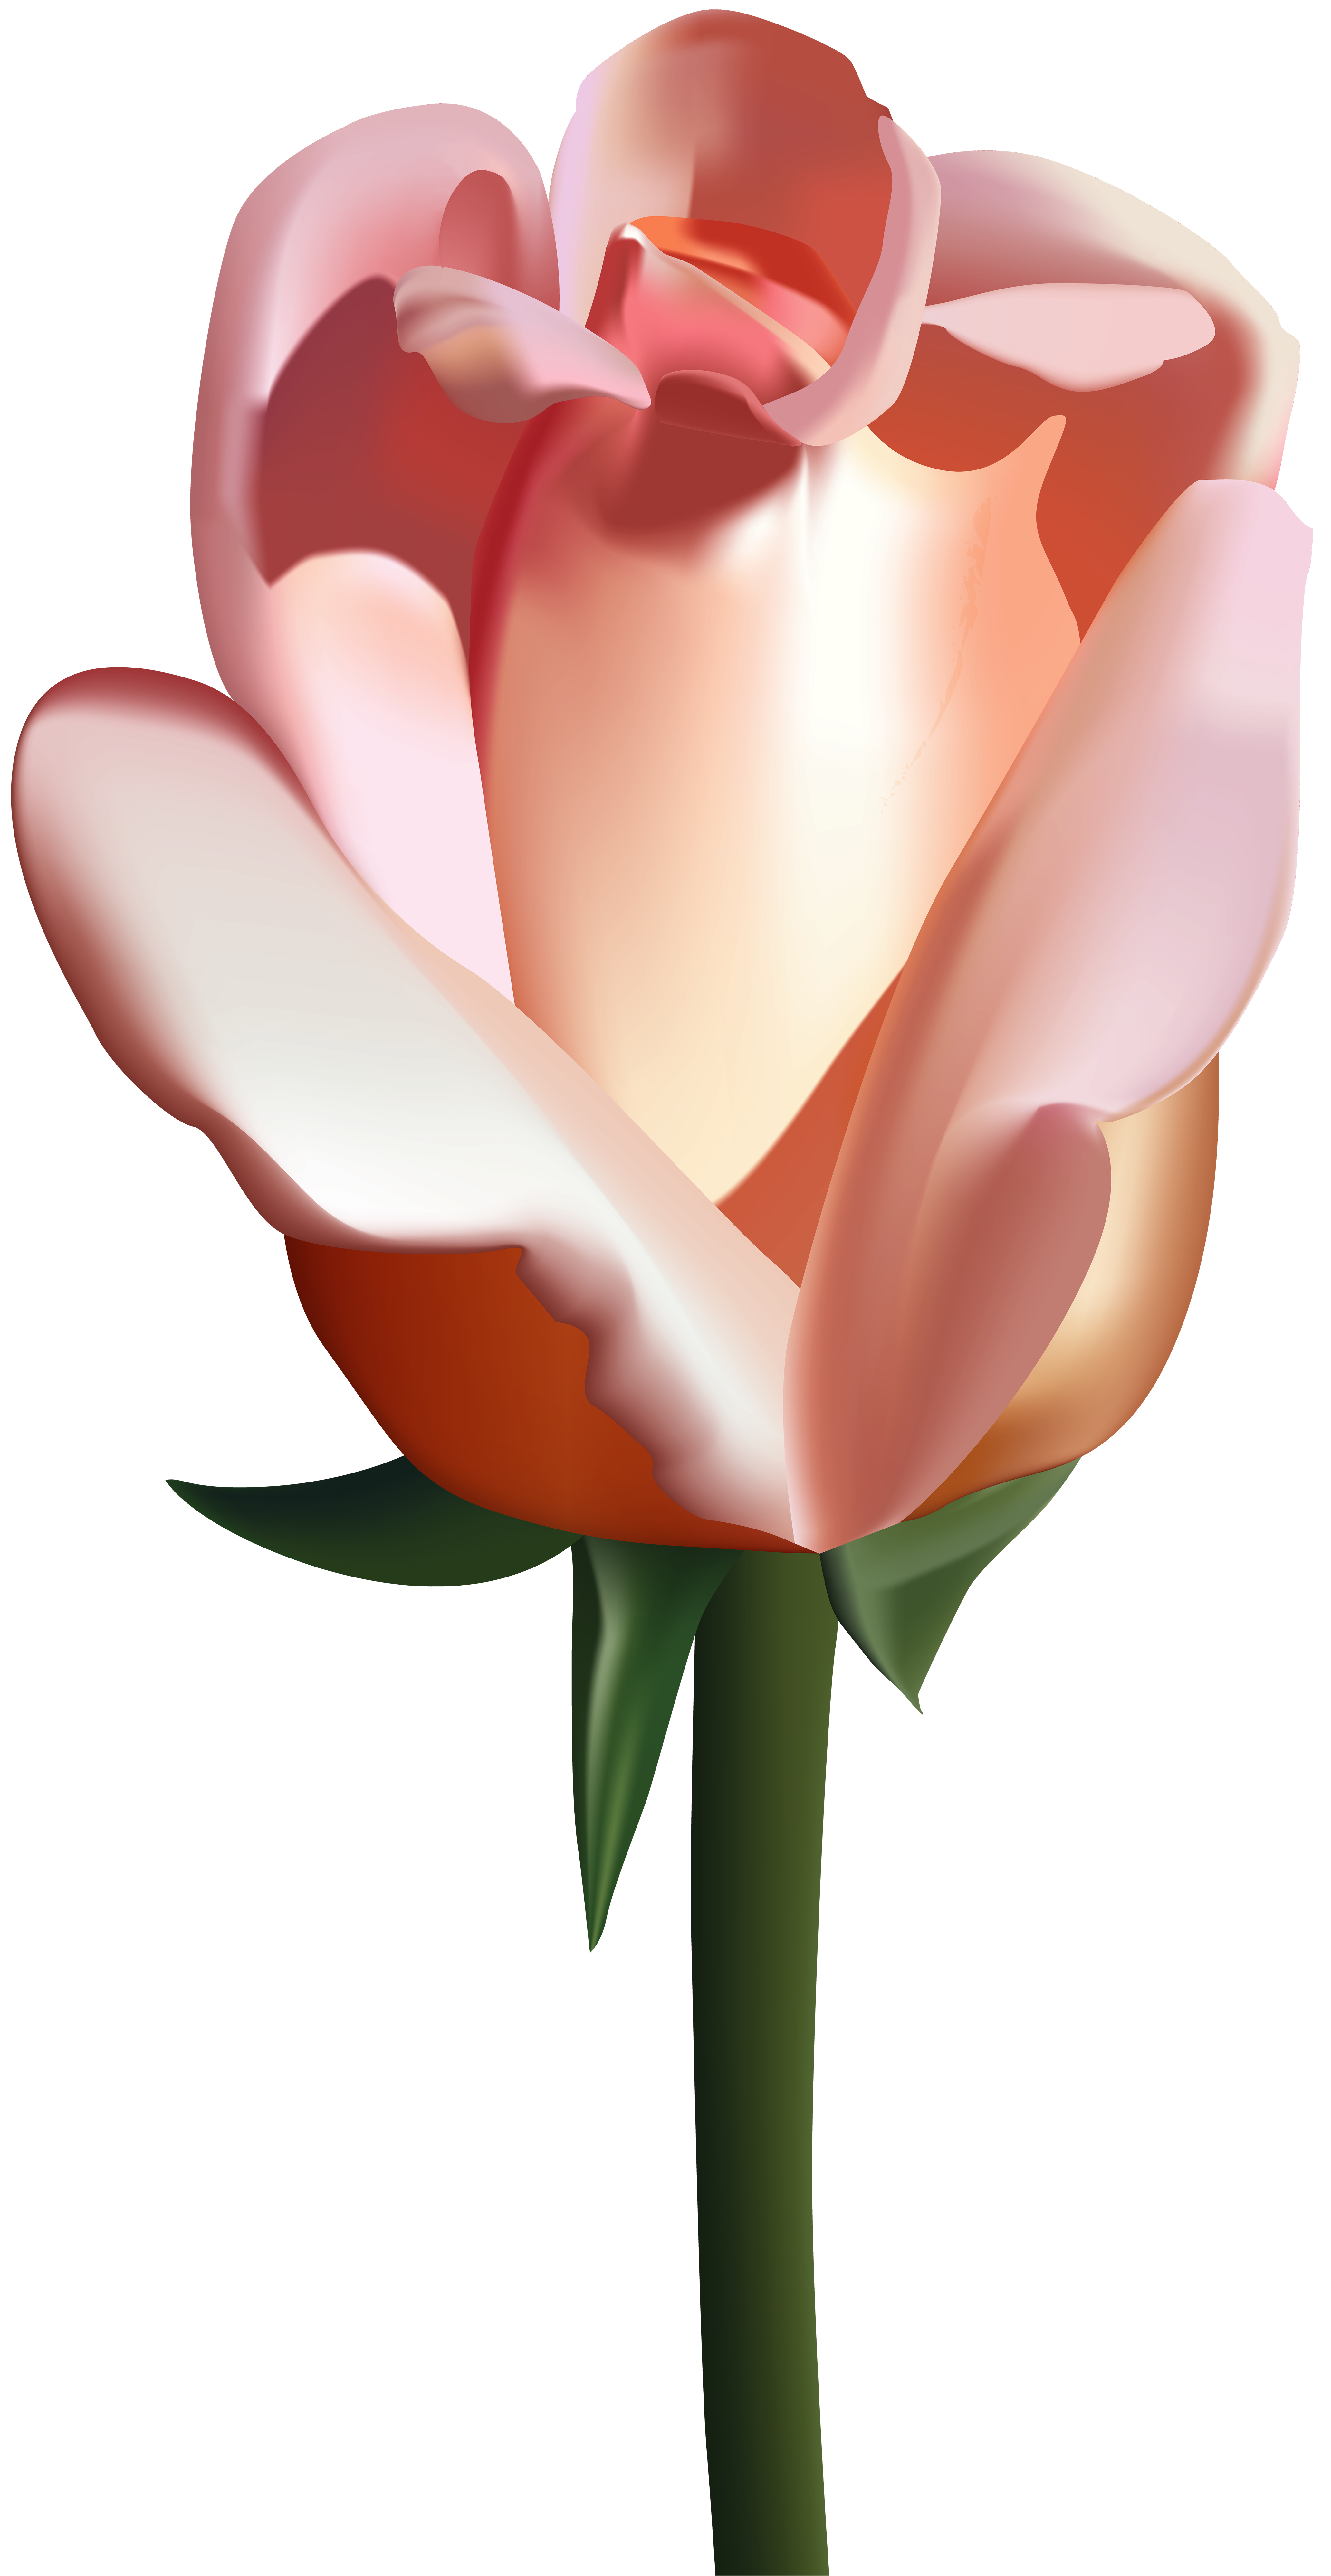 Png clip art image. Clipart roses peach rose